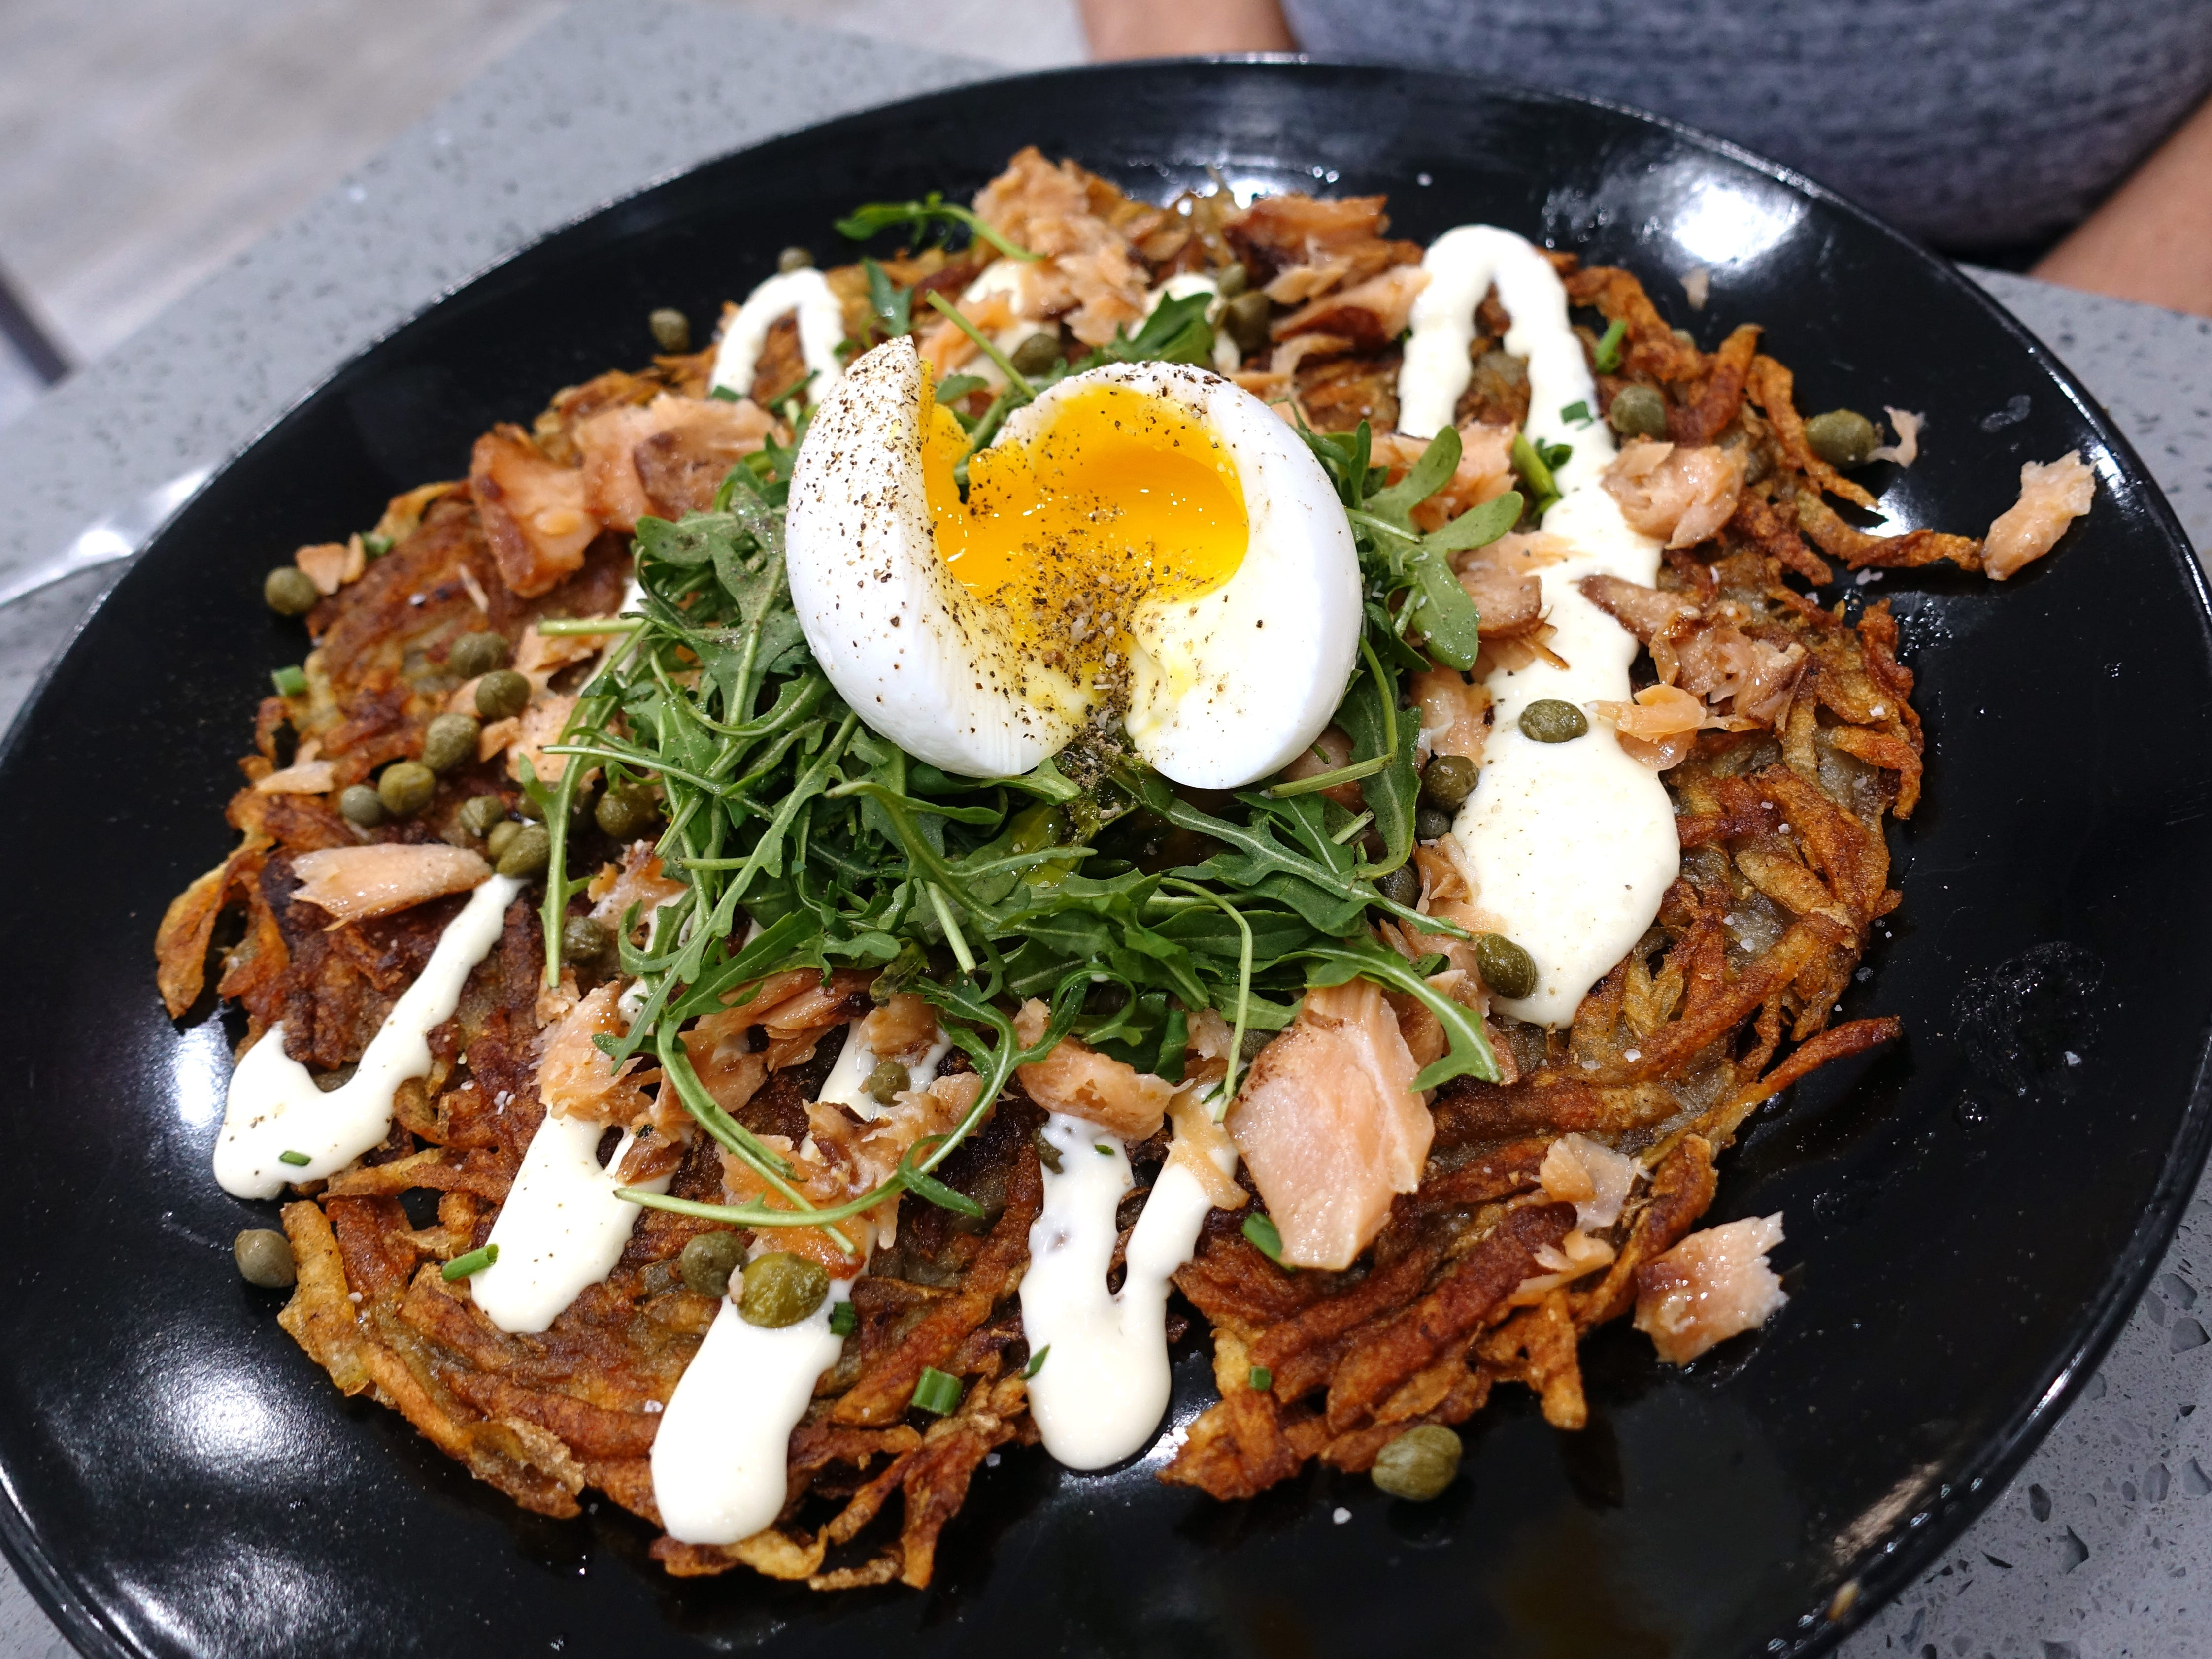 The French Connection: potato tartin with mesquite-smoked salmon, soft-boiled egg, capers, Brie sauce, chives and arugula at Sweetest Season Artisan Eatery in Tempe.